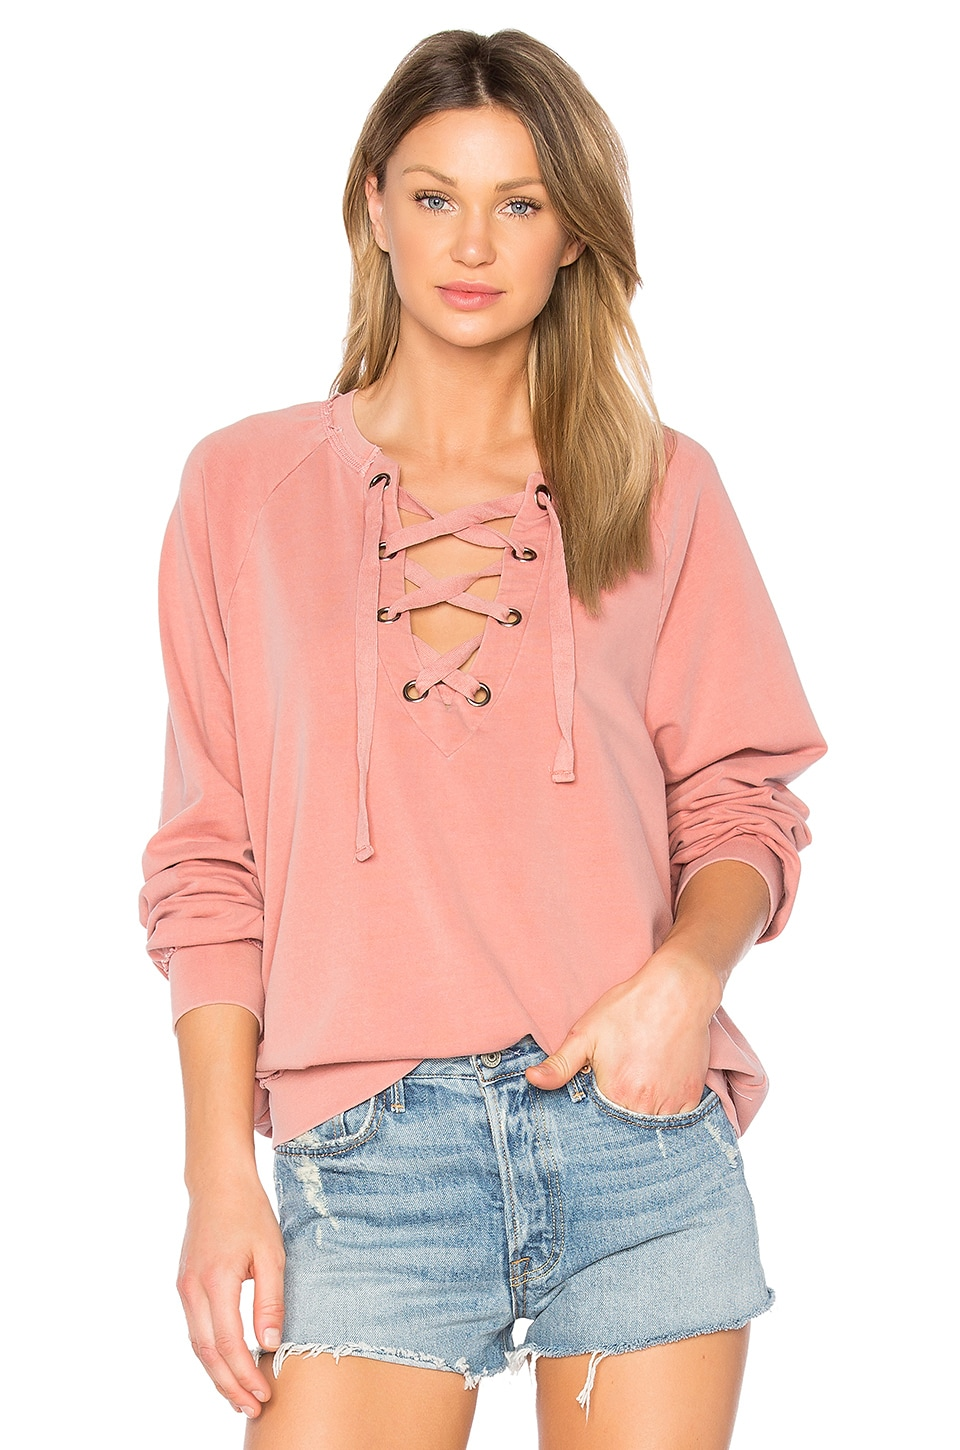 Project Social T Slave to Love Lace Up Sweatshirt in Pigment Spice